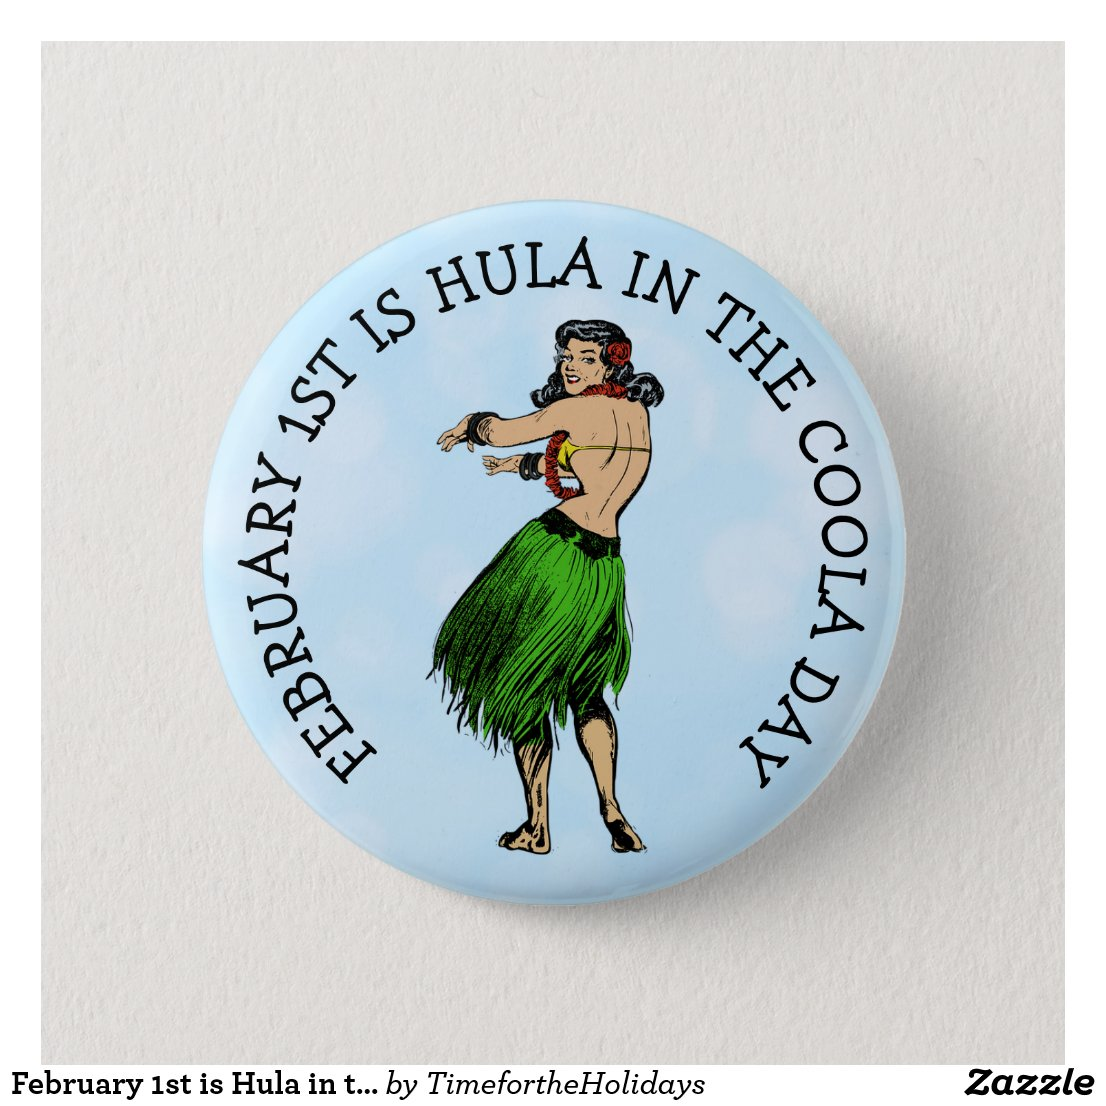 February 1st is Hula in the Coola Day Funny Button